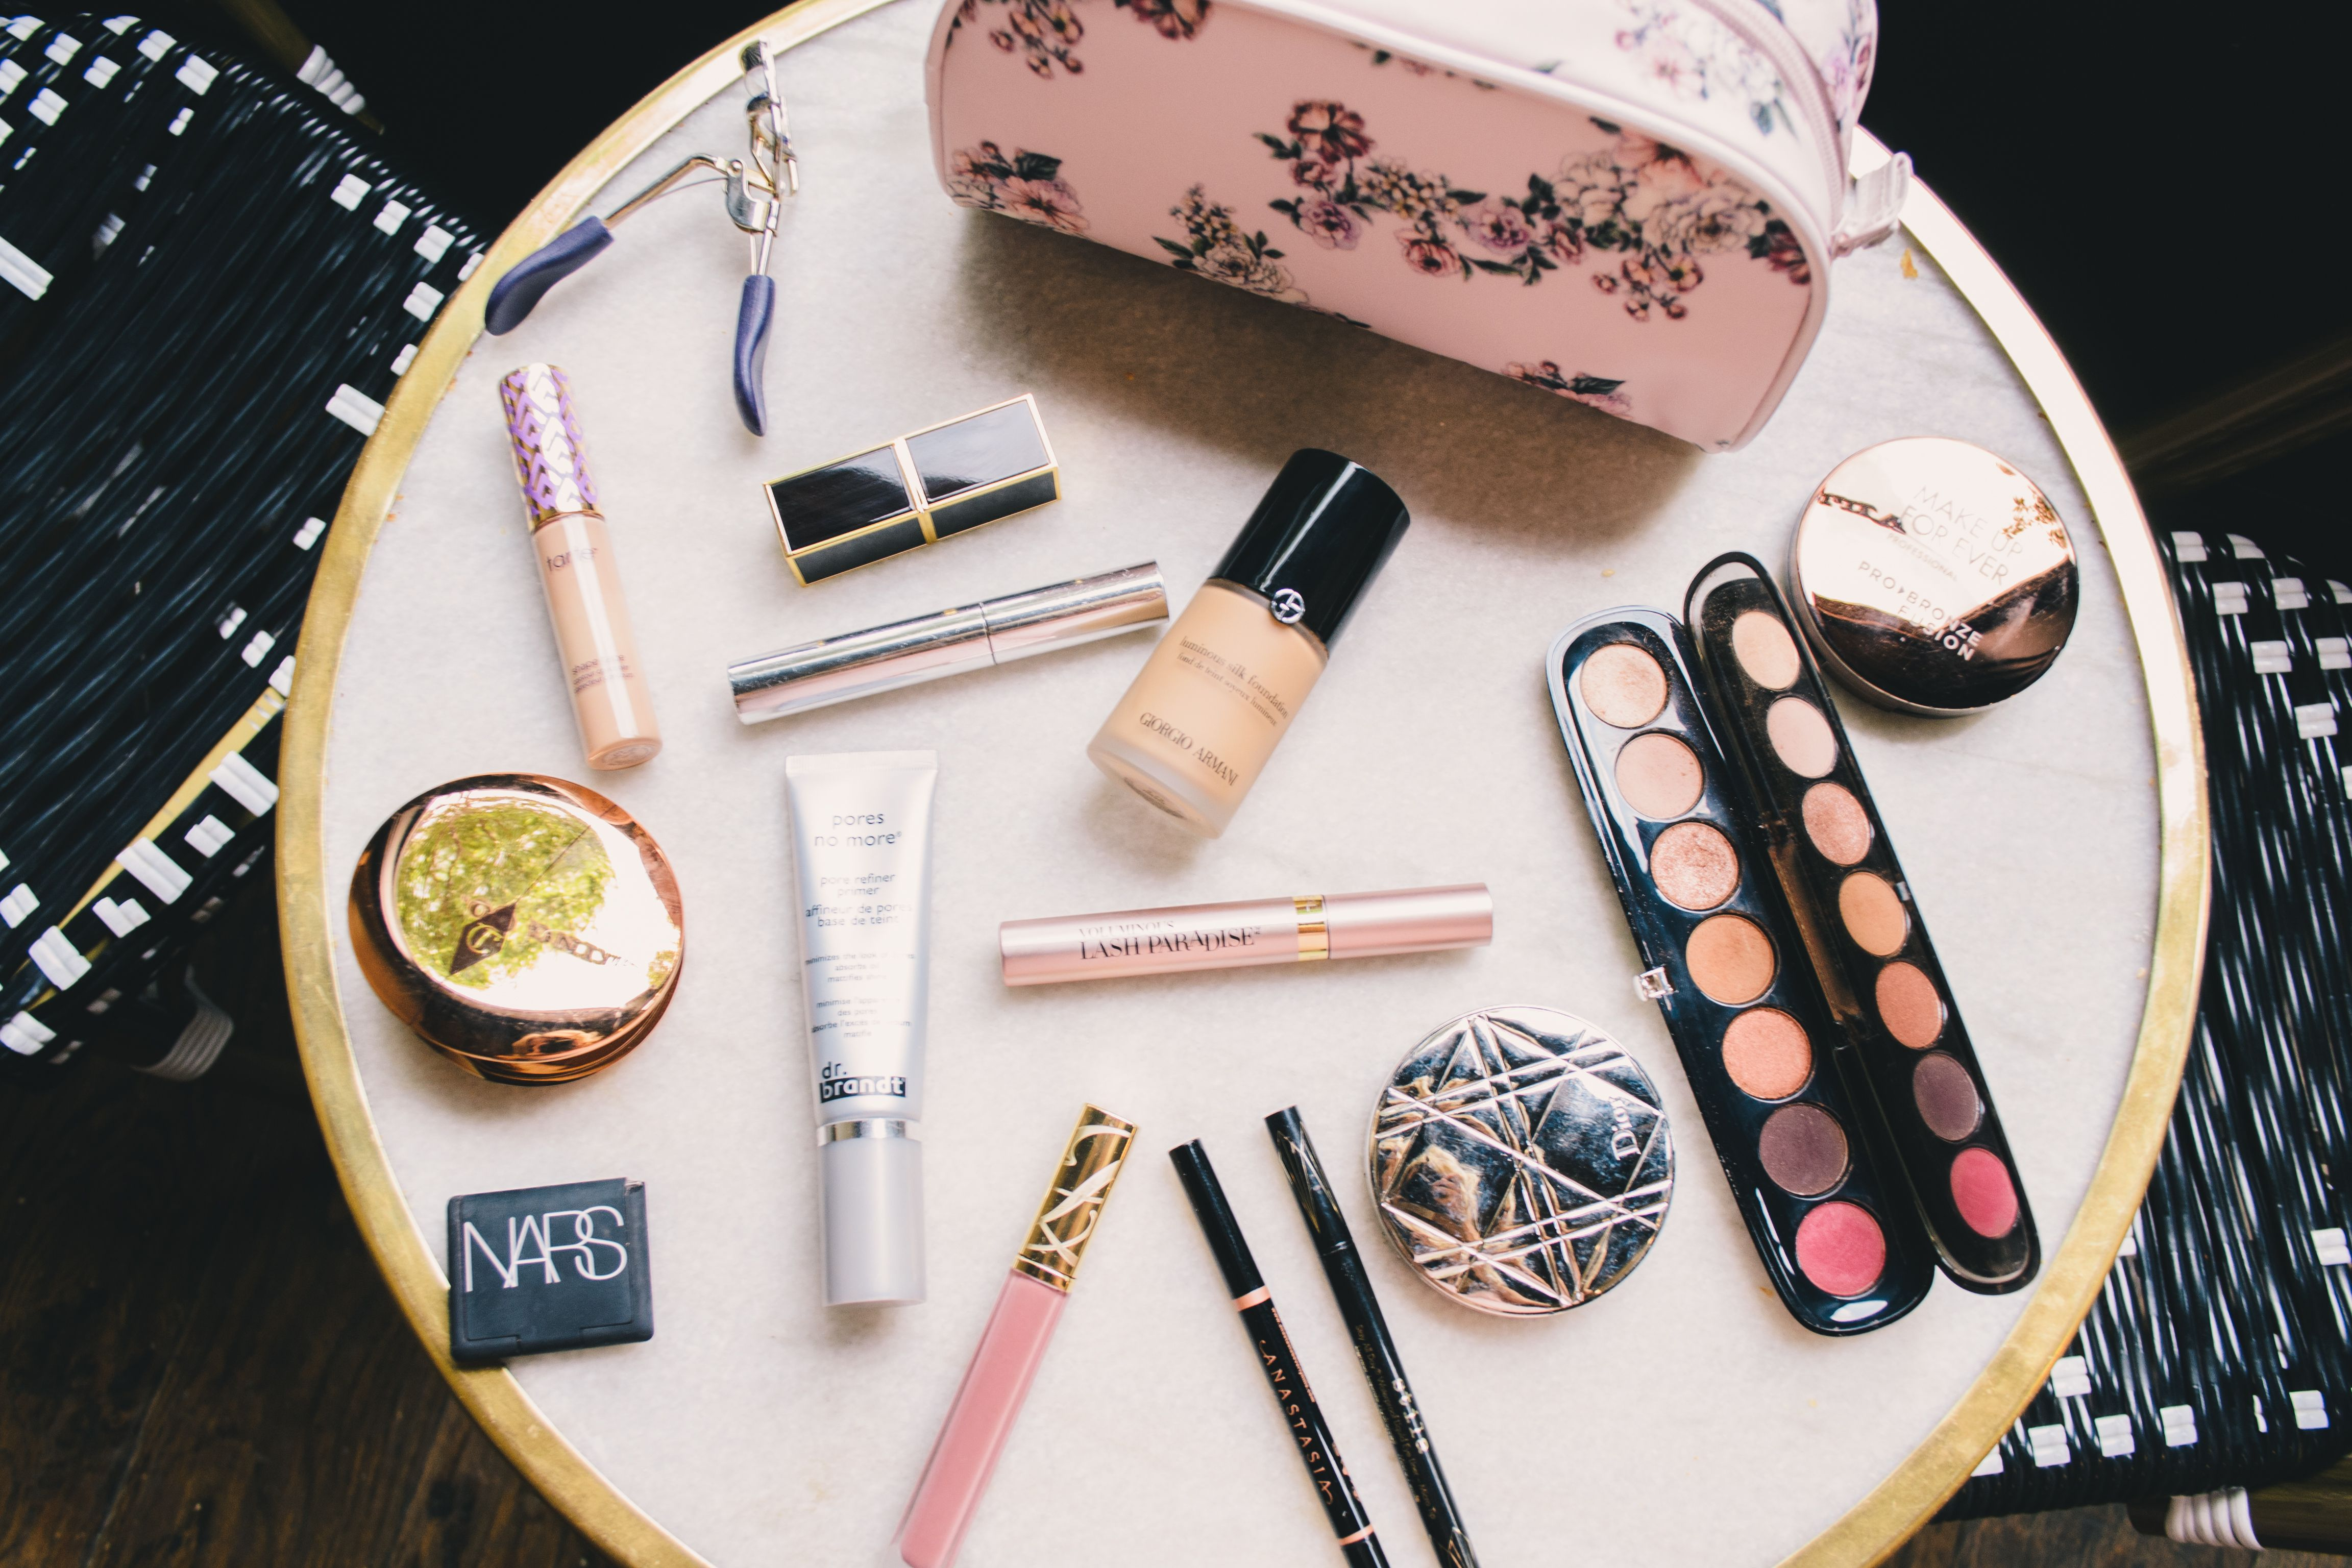 What S In My Everyday Makeup Bag Sephora Spring Sale Picks 2019 Hannah Mcdonnell In 2020 Whats In My Makeup Bag Everyday Makeup Makeup Bag